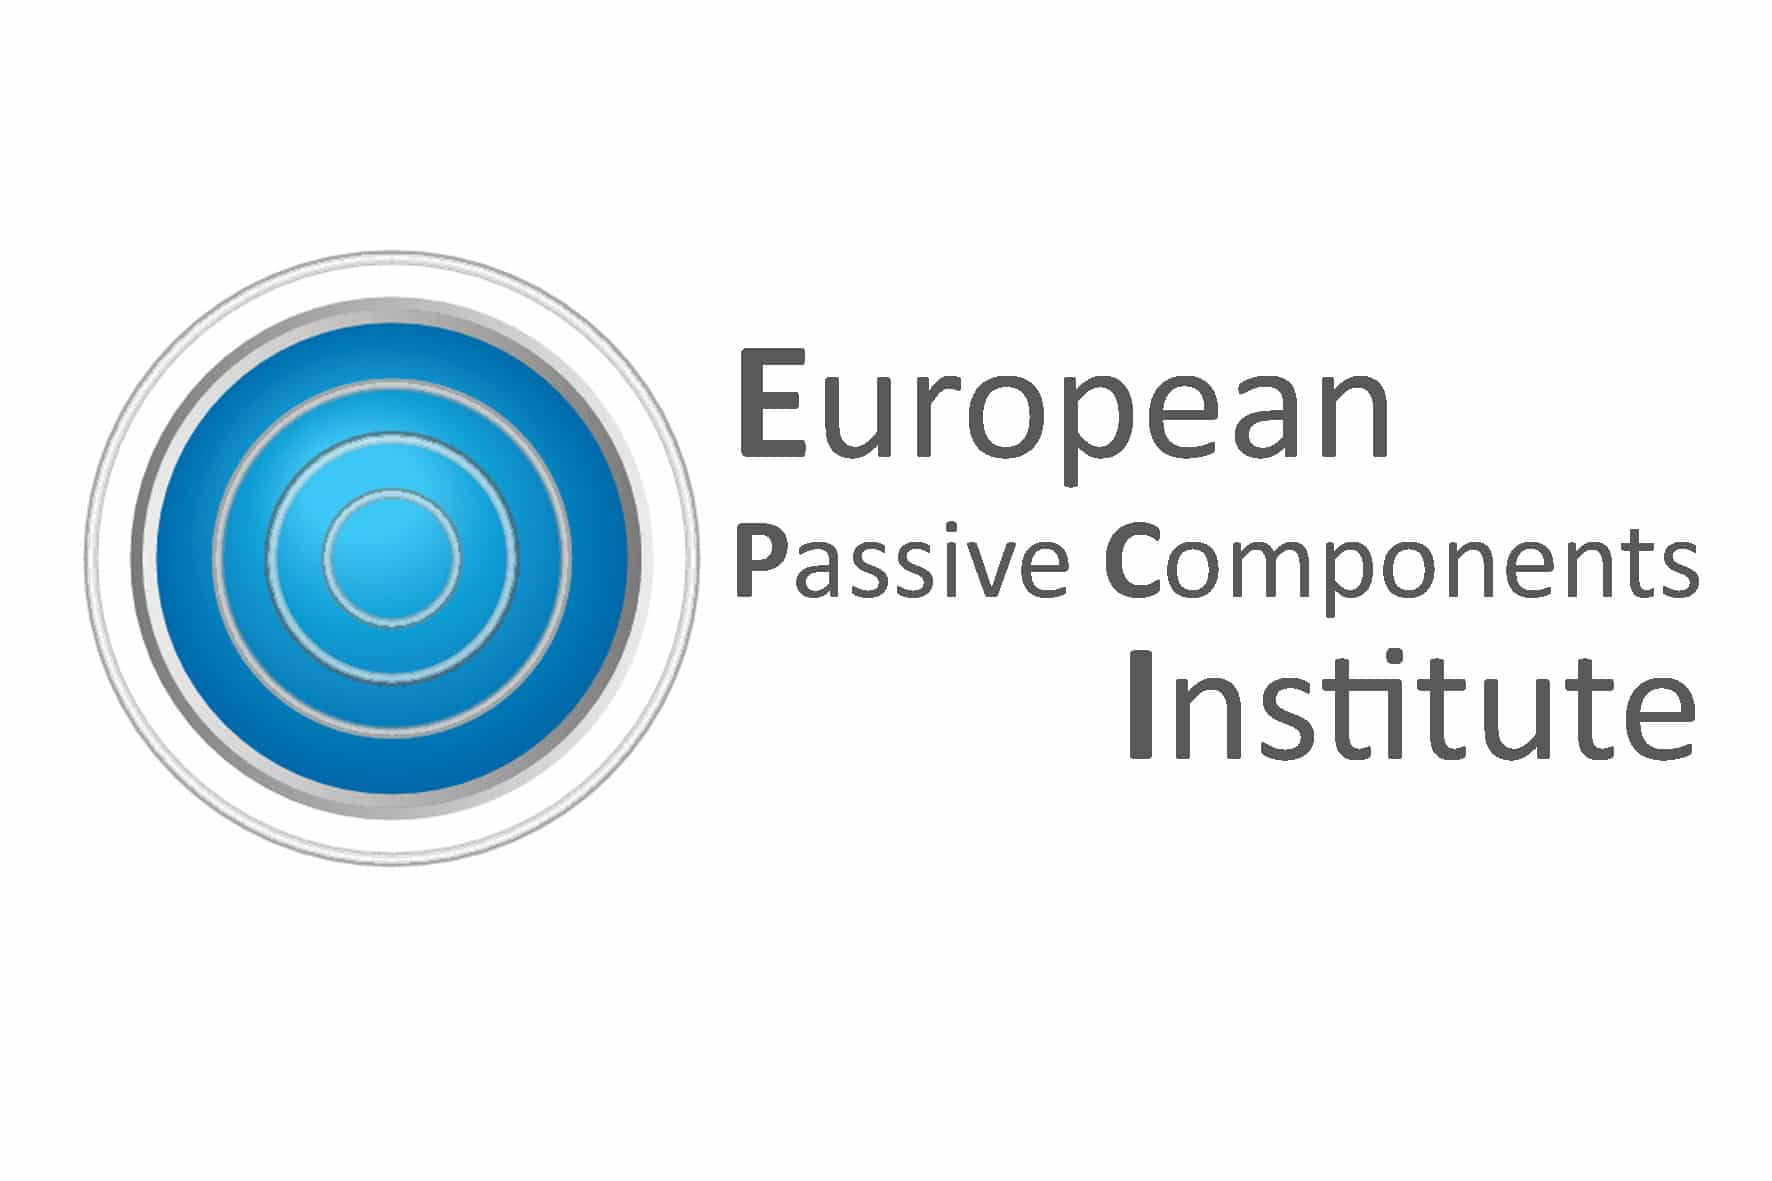 EPCI Overview, Website Visitor Profile and Six Month Review Report